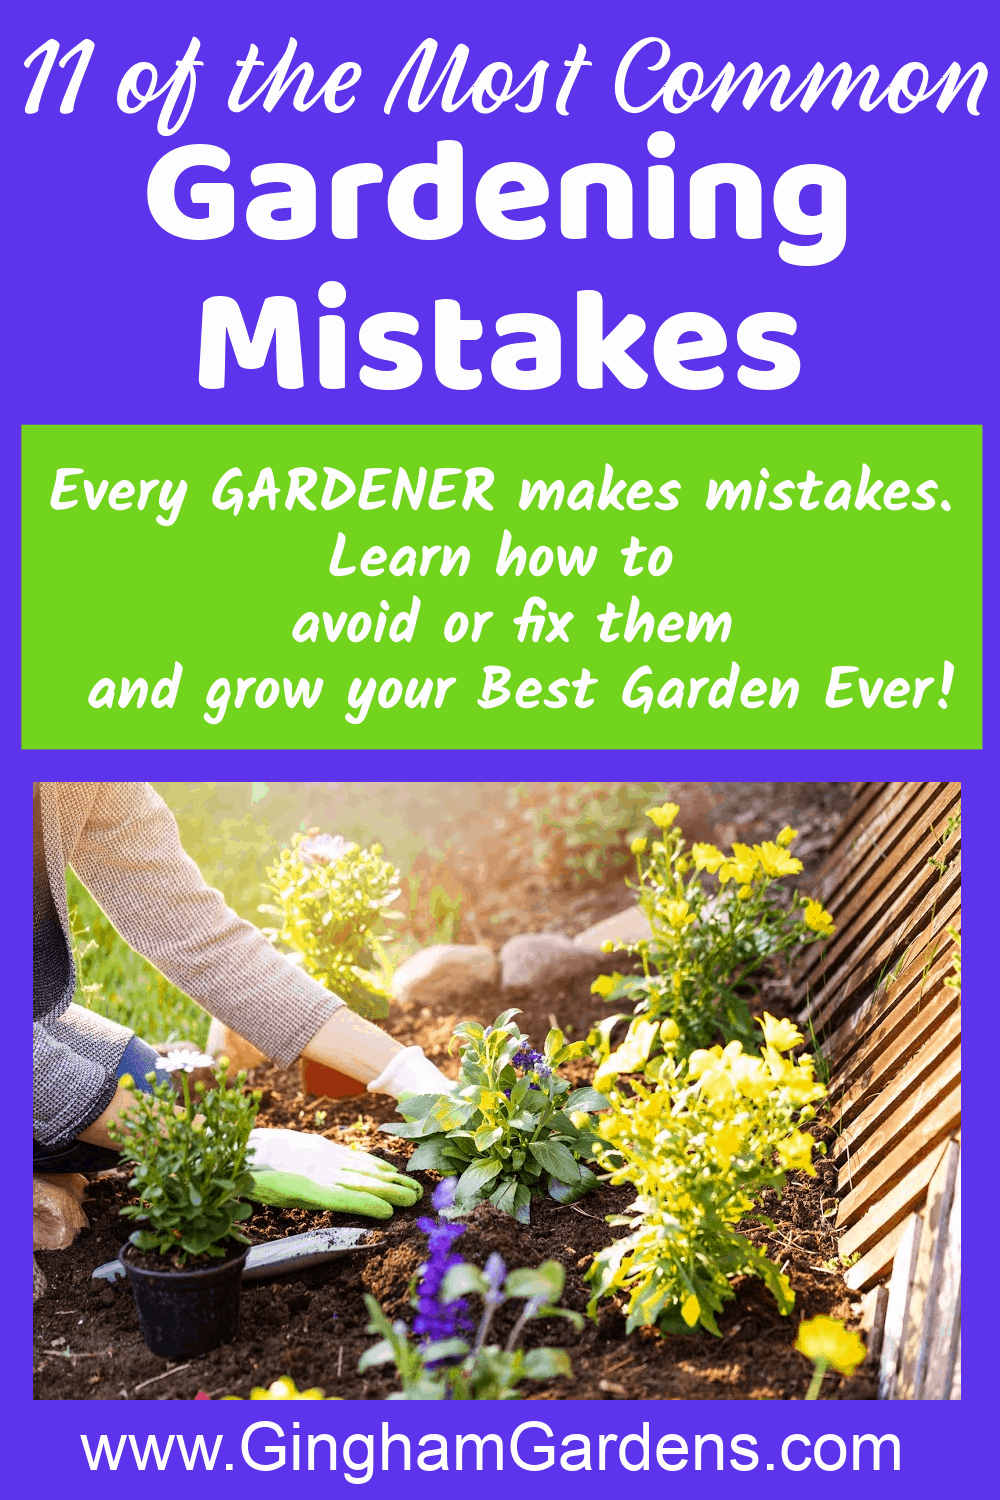 Image of a Gardener with text overlay - 11 of the most common Gardening Mistakes